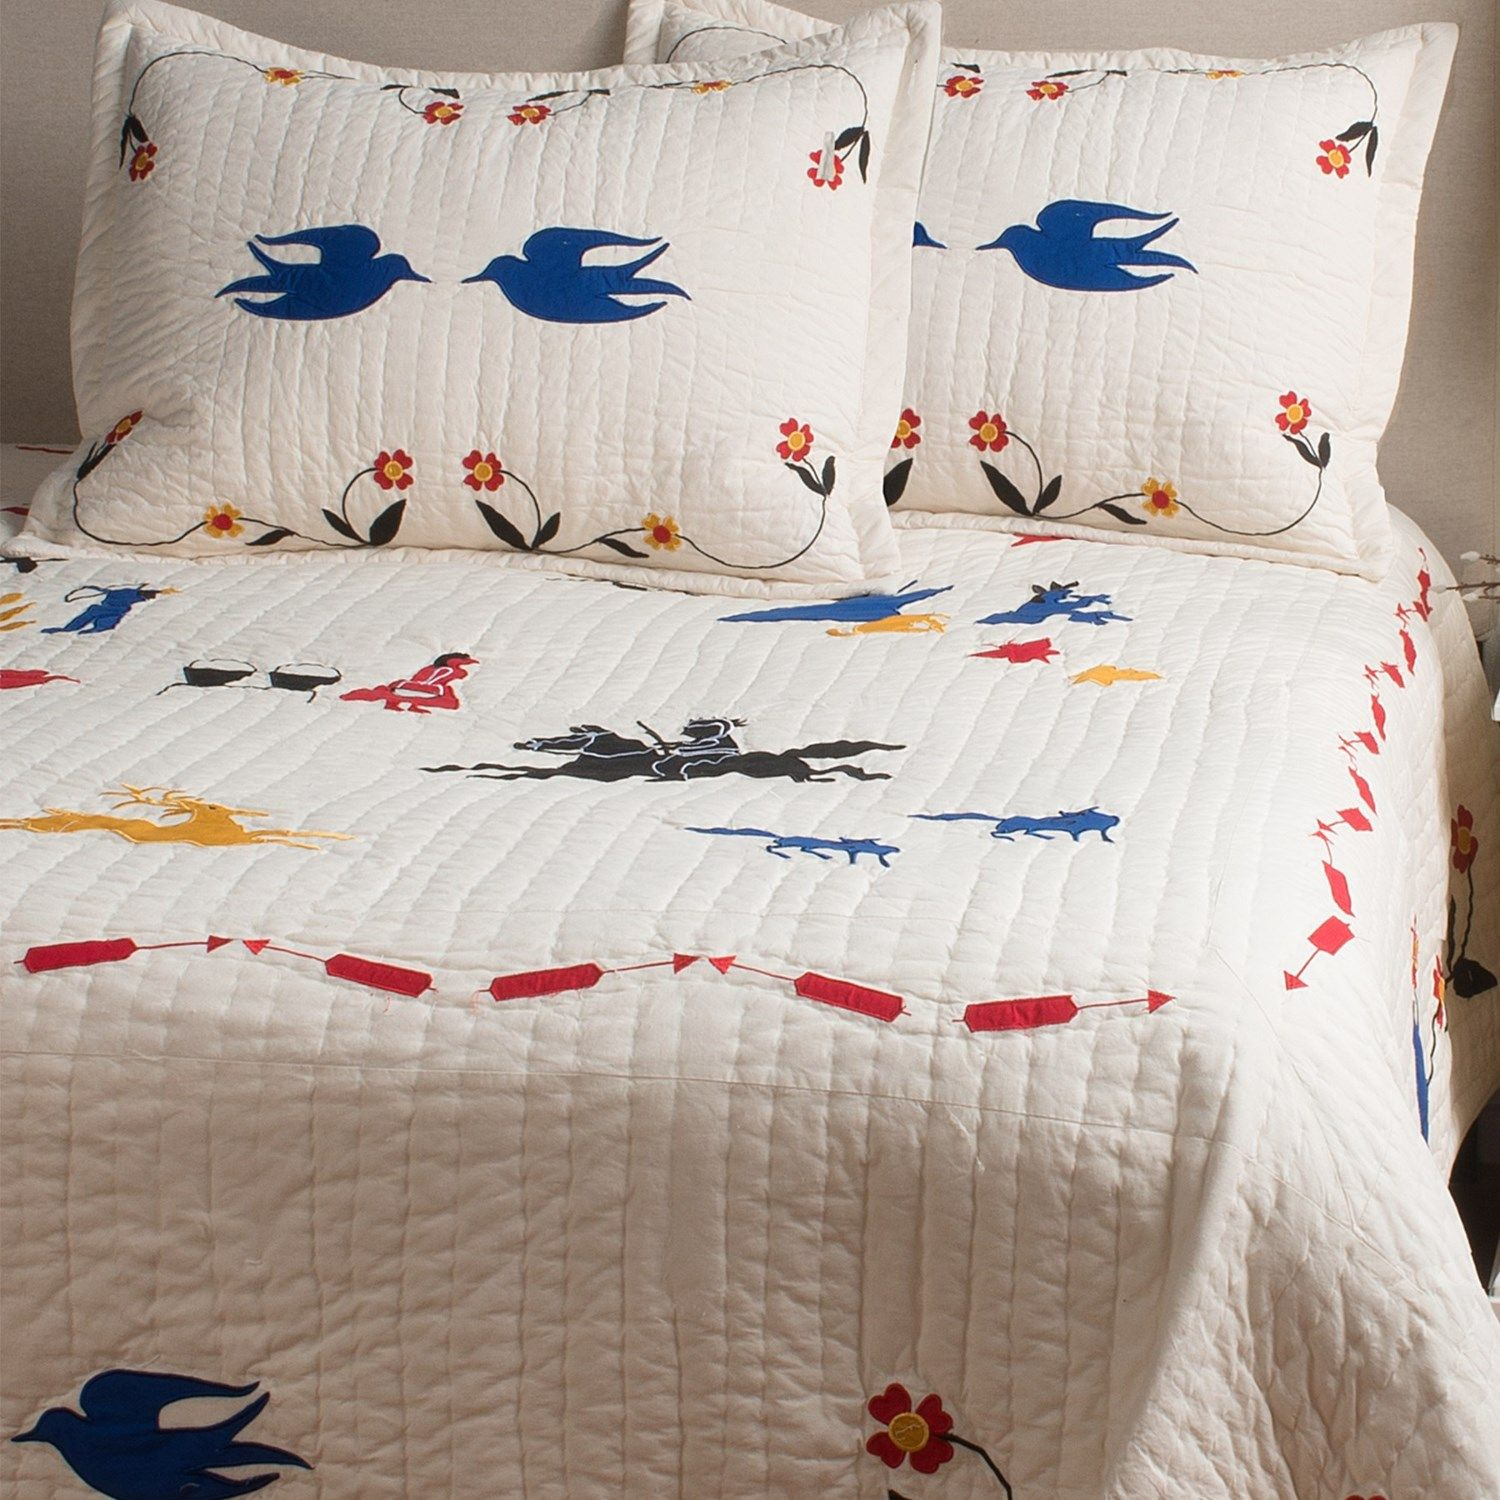 Pendleton Crow Creek Cotton Quilt - Queen | Cotton quilts, Crows ... : pendleton quilts - Adamdwight.com